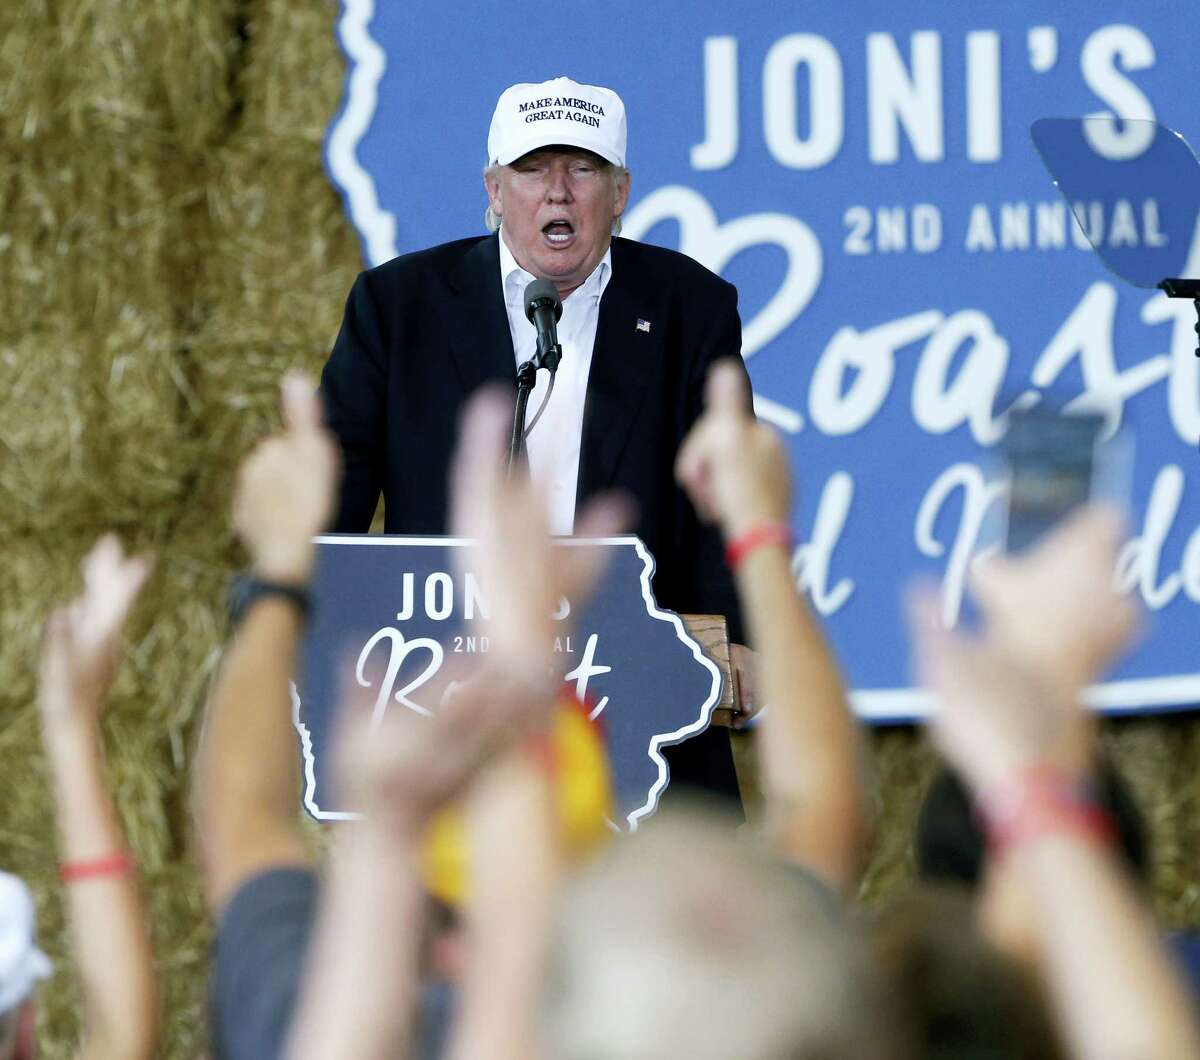 Republican presidential candidate Donald Trump speaks at Joni's Roast and Ride during a fundraiser at the Iowa State Fairgrounds, in Des Moines, Iowa on Aug. 27, 2016.